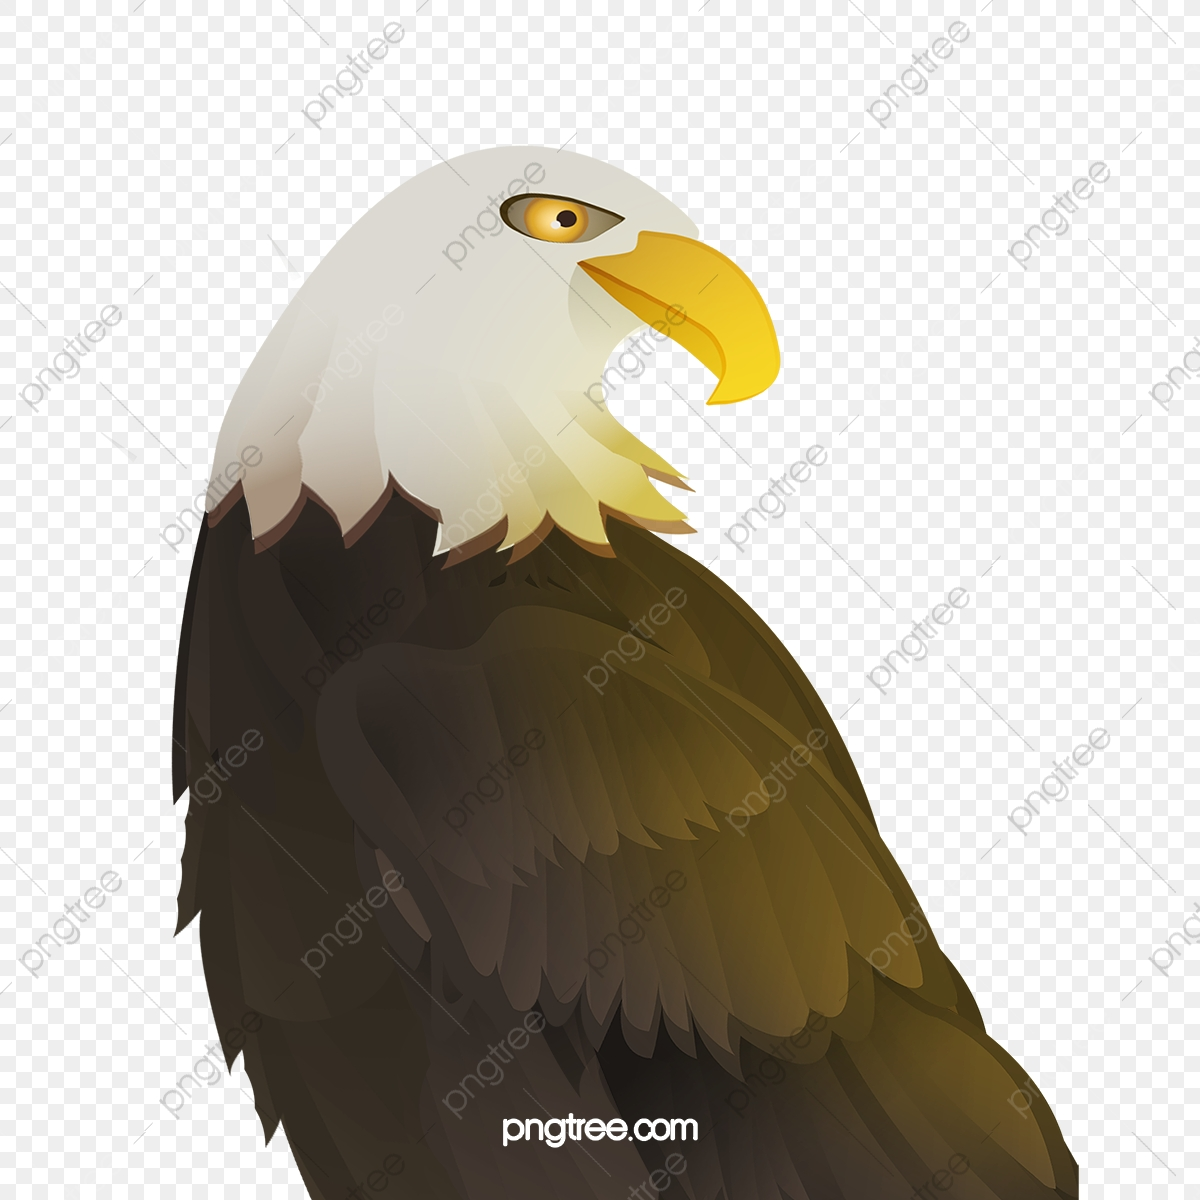 Eagle, Eagle Clipart, Black PNG Transparent Clipart Image and PSD.